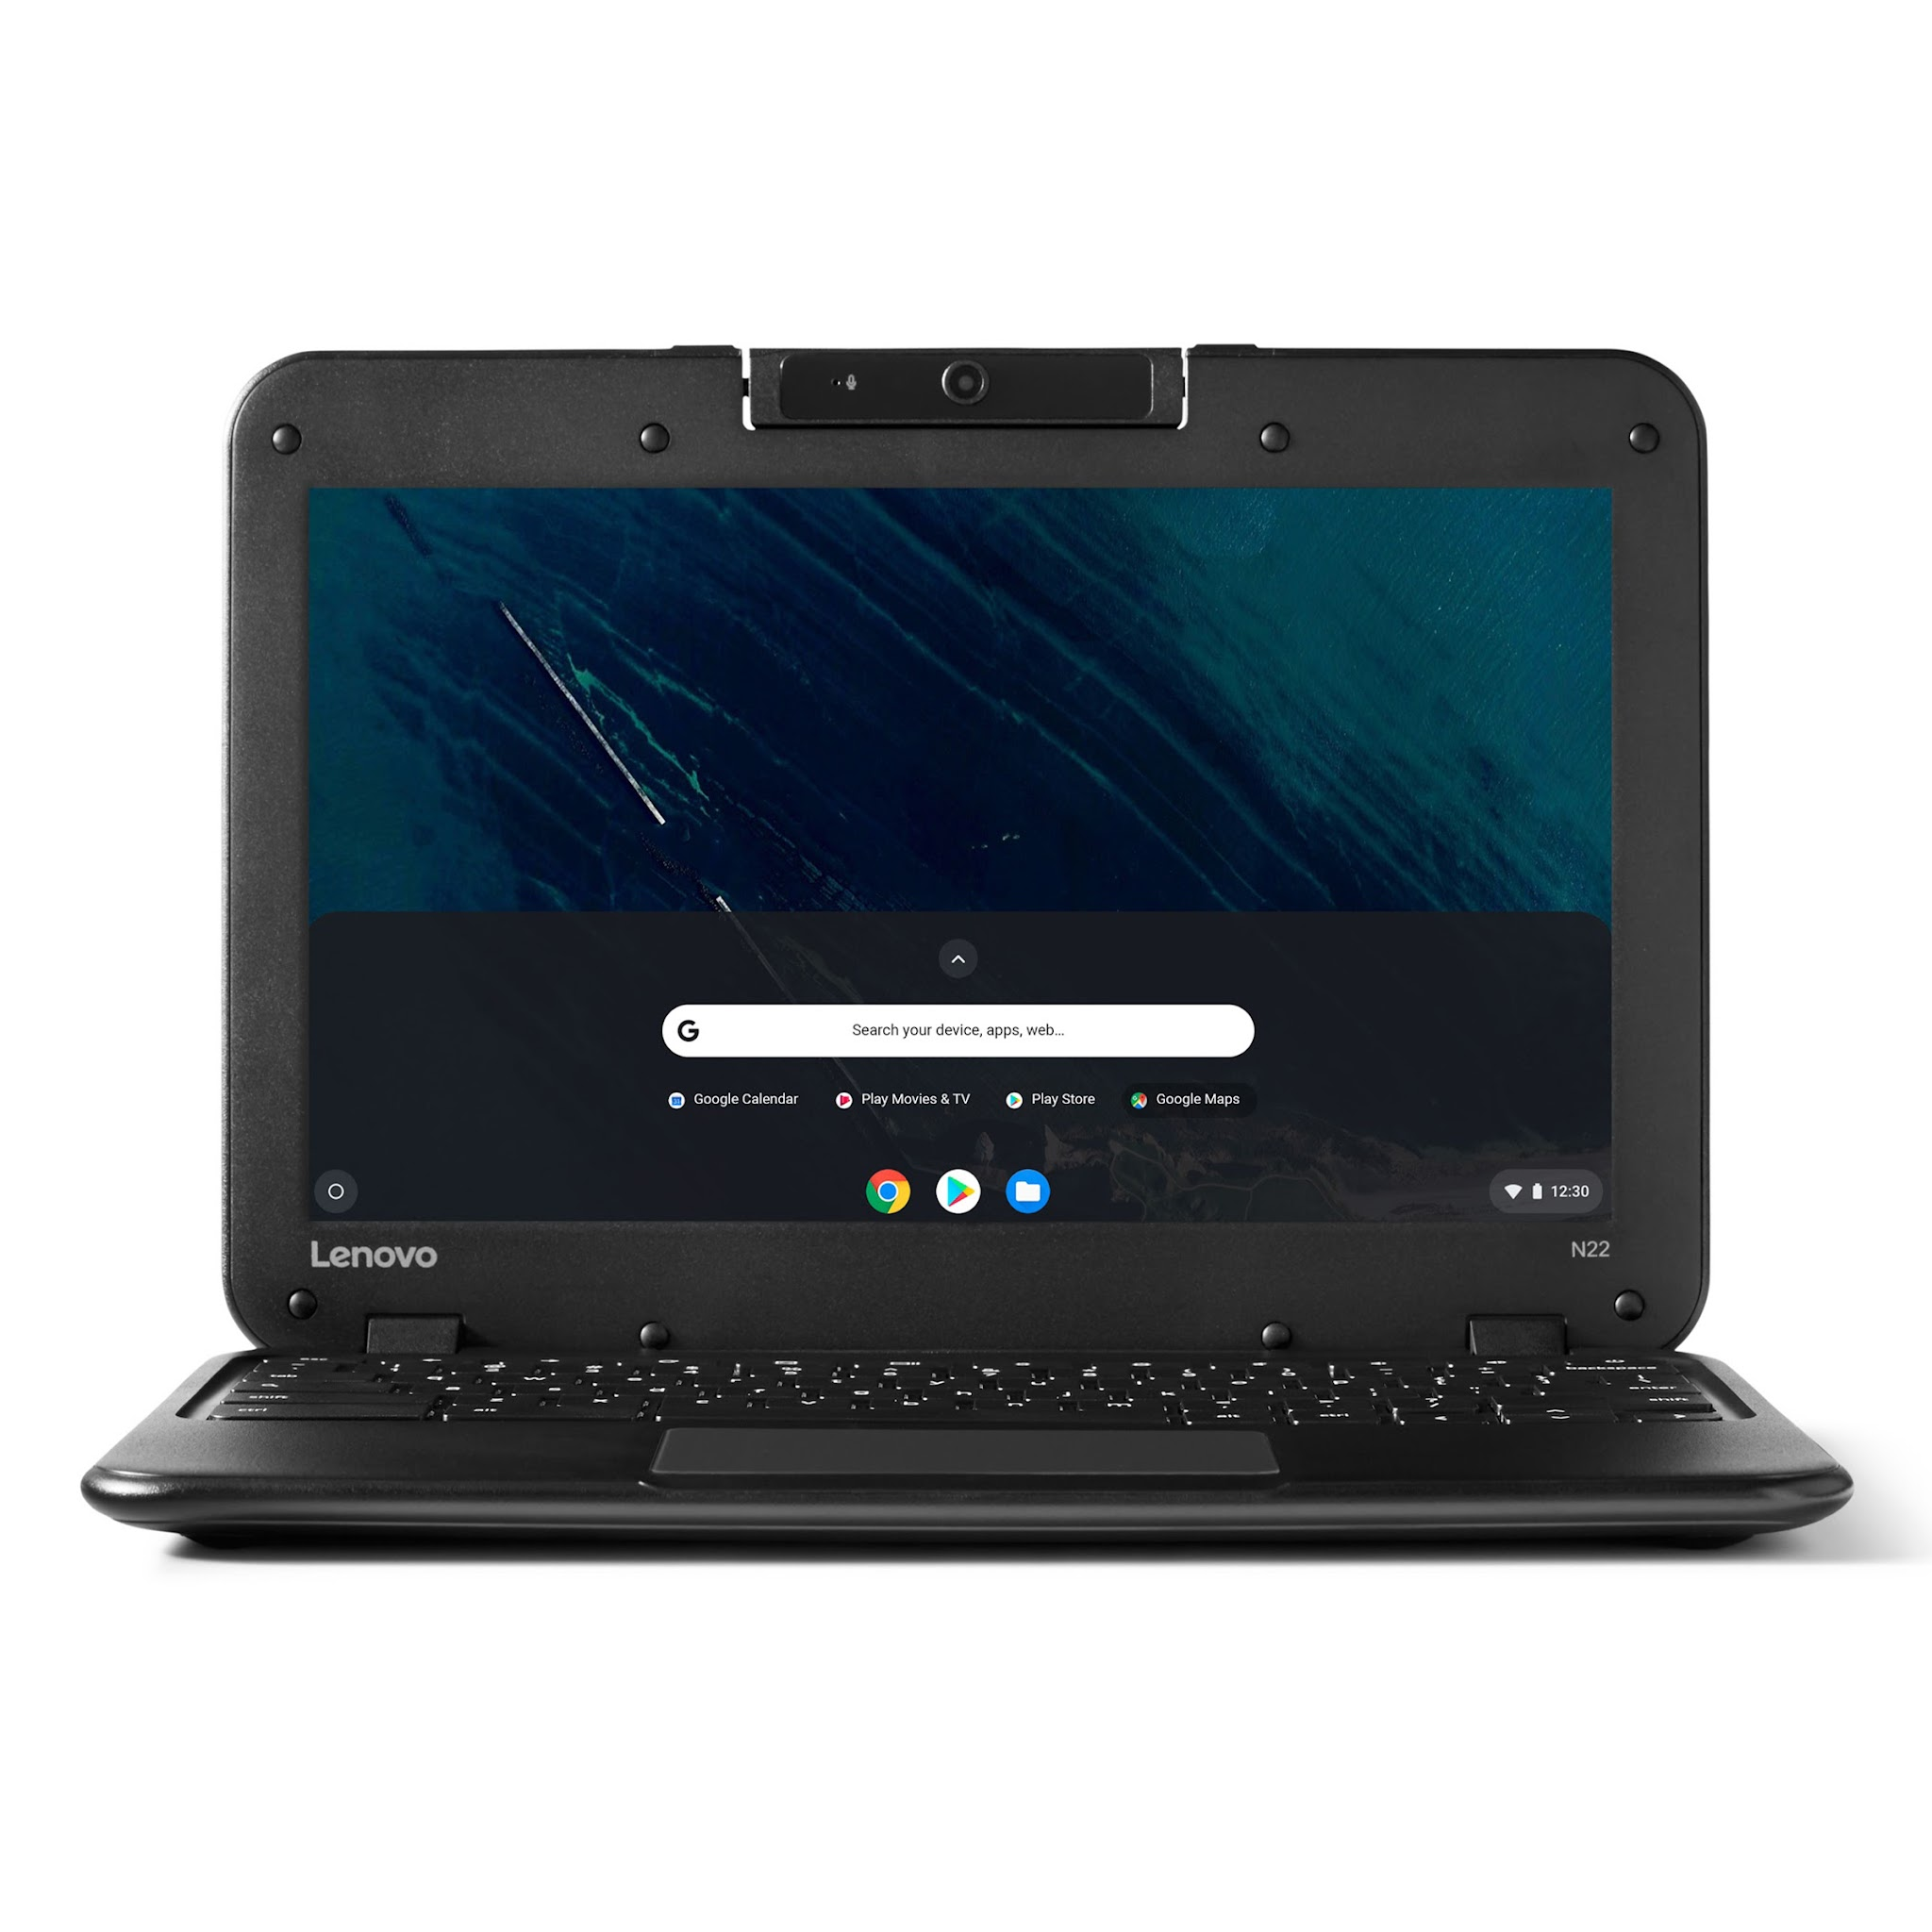 Lenovo N22 Chromebook - photo 1